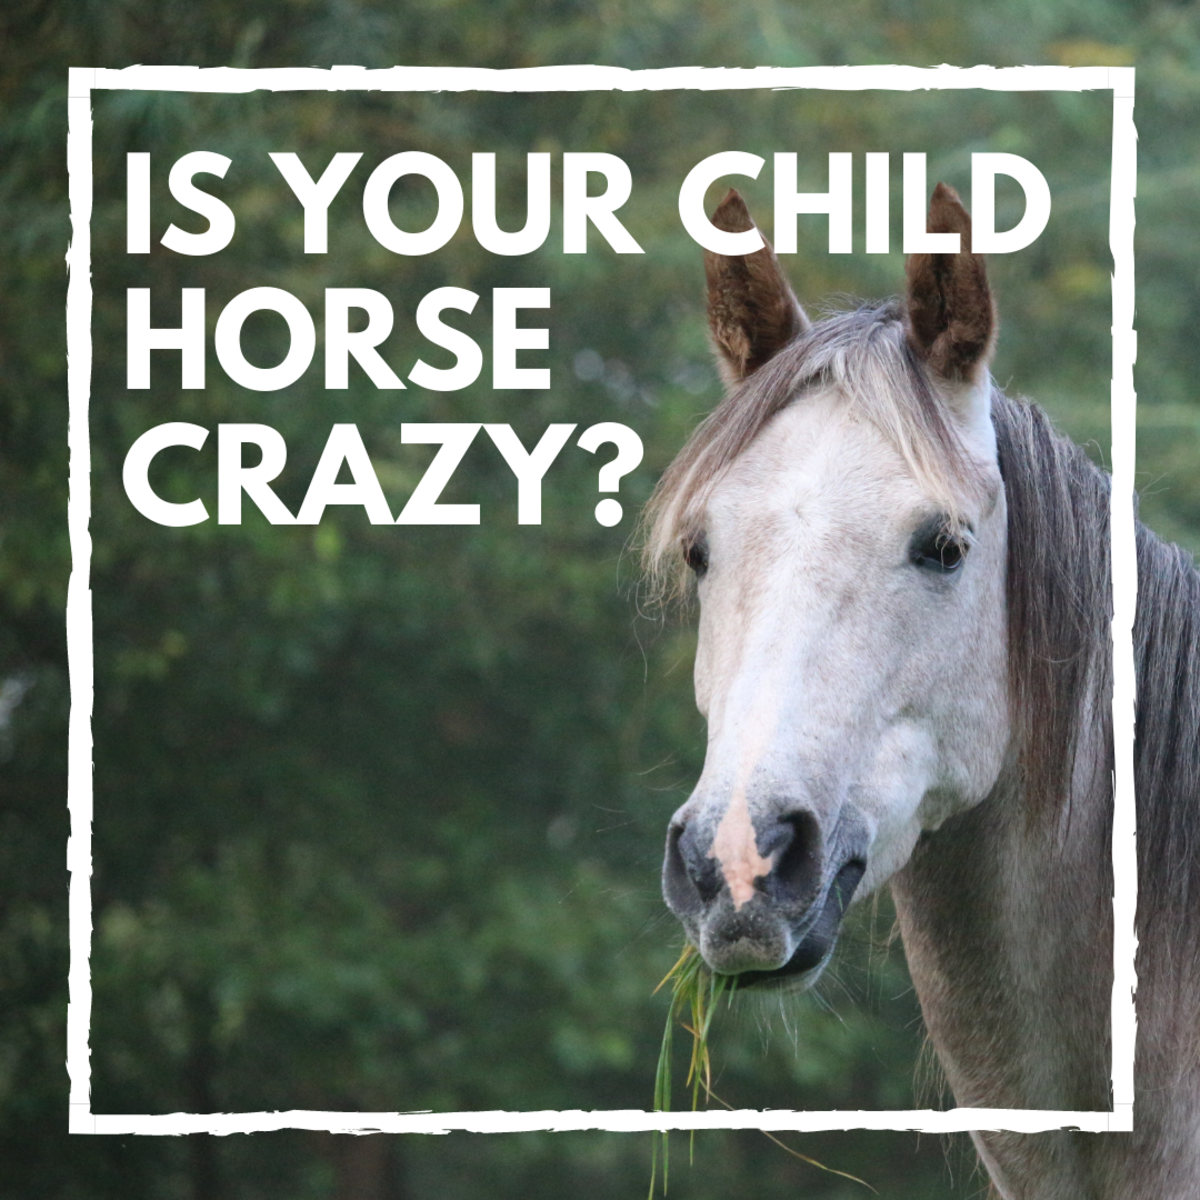 Will My Child Outgrow the Horse Phase? 20 Signs to Look For